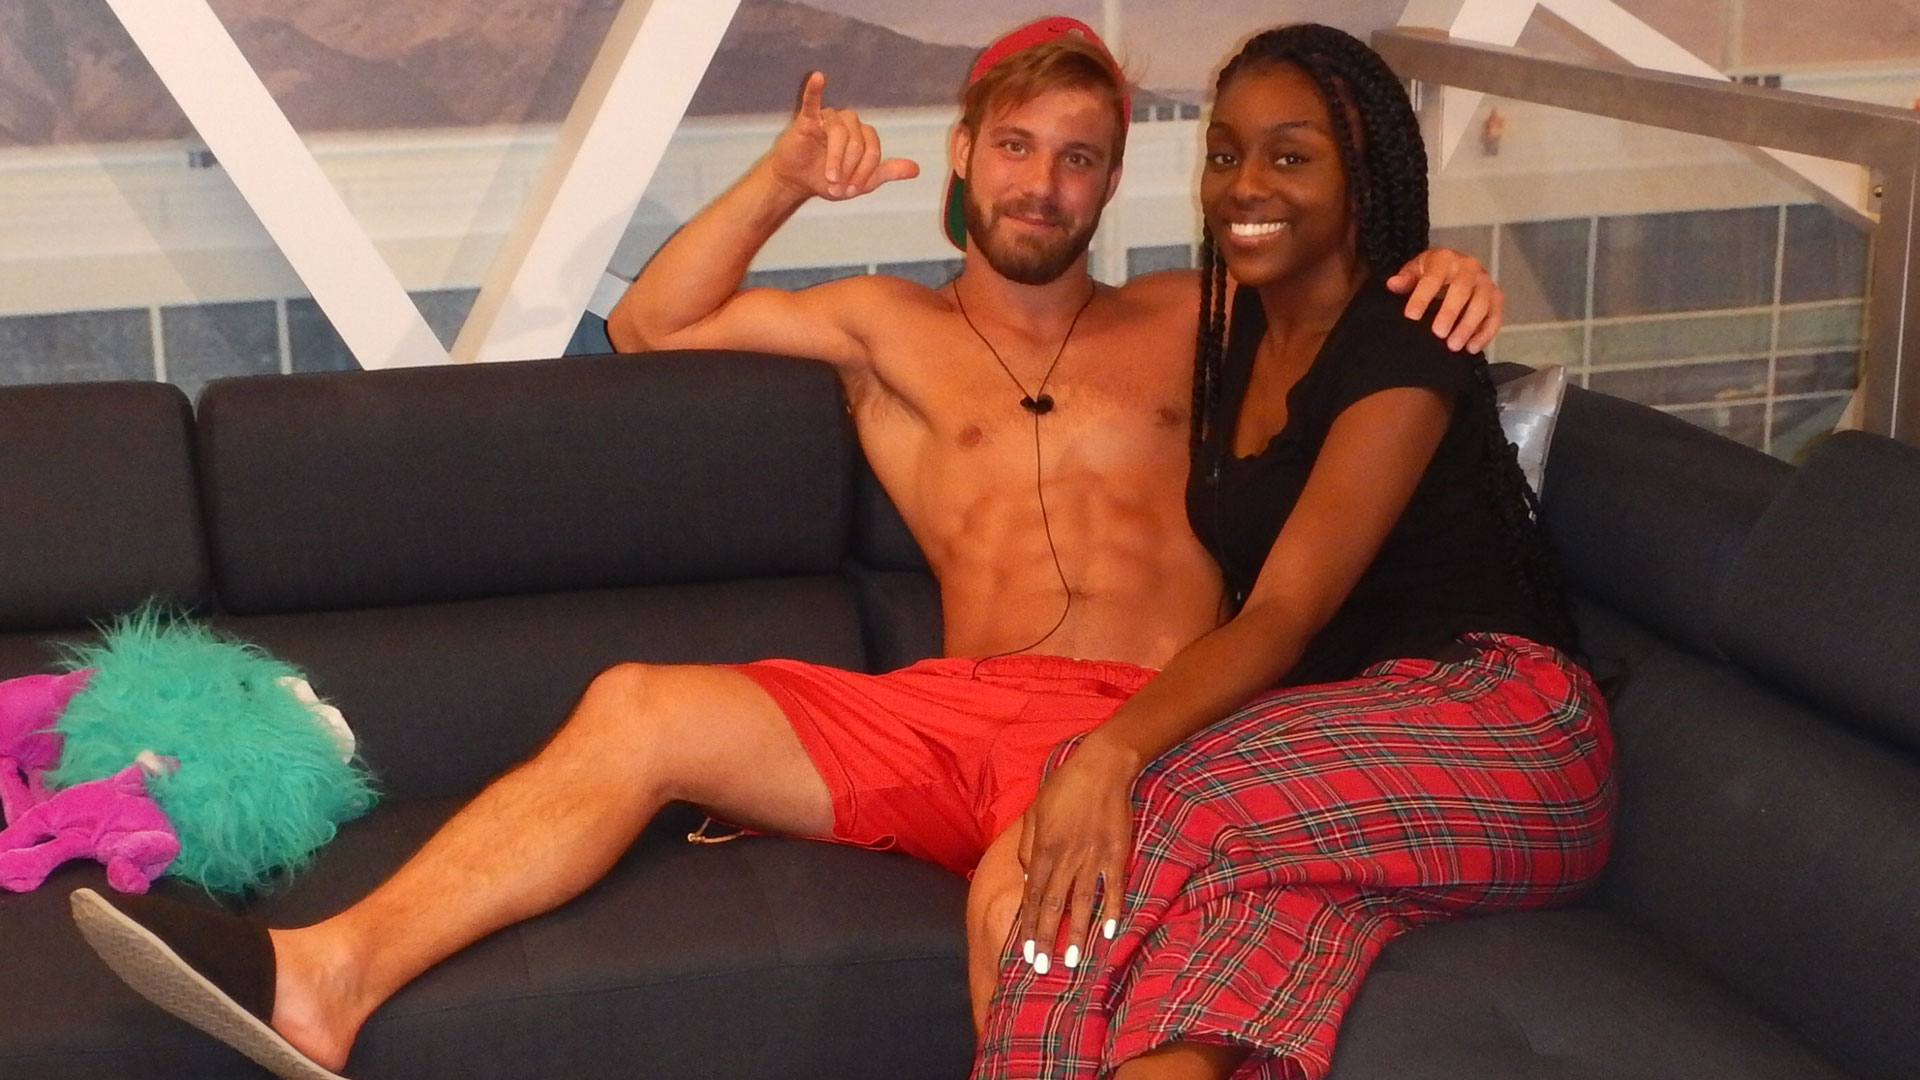 Paulie and Da'Vonne grab a spot on the couch and chill.